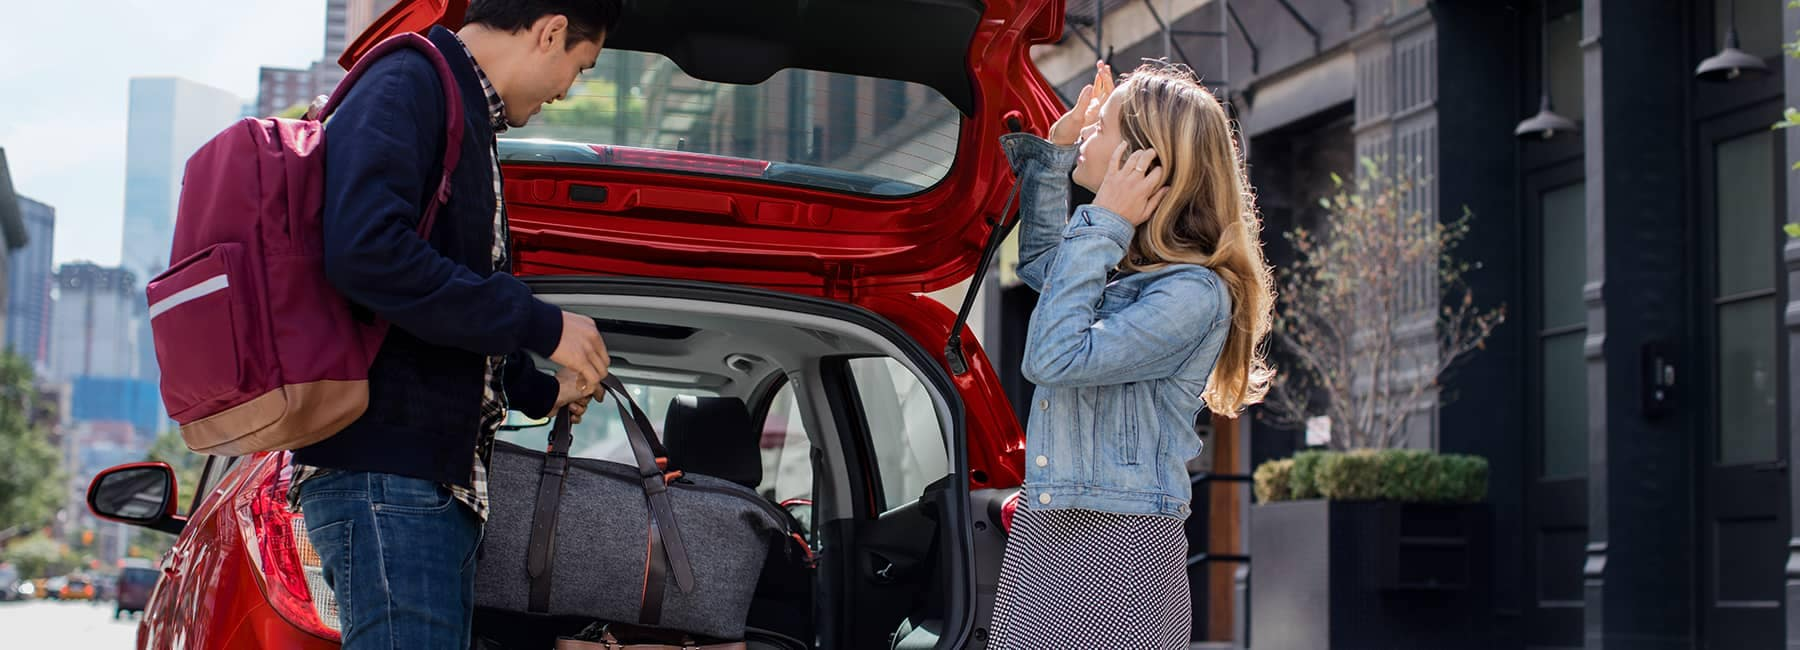 Red 2020 Chevrolet Spark with Open Hatchback_mobile